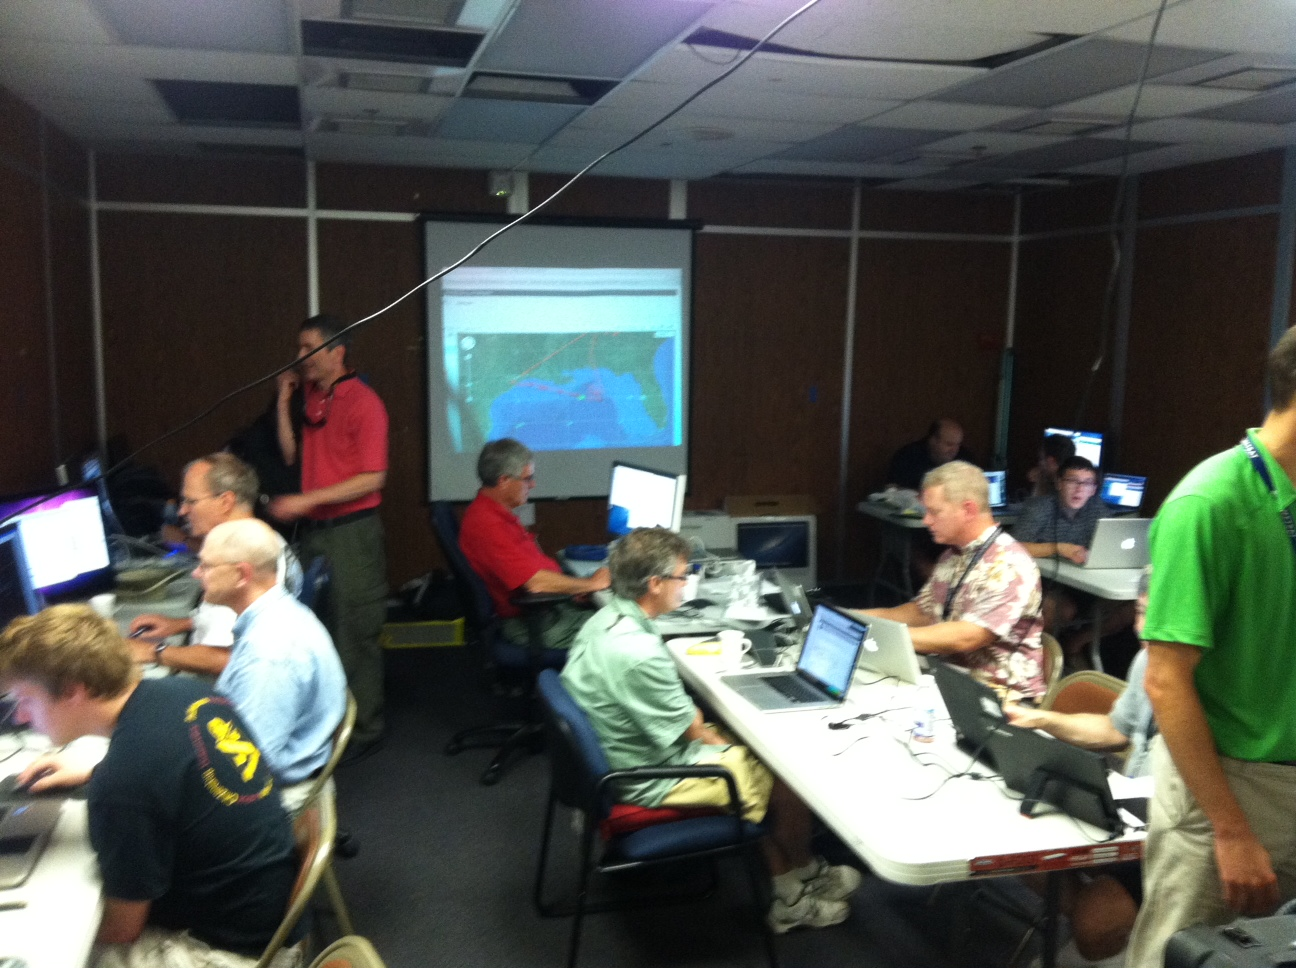 Sean (in his Phi Eta Sigma shirt; bottom right) working to give weather updates to airplanes in flight during SEAC4RS